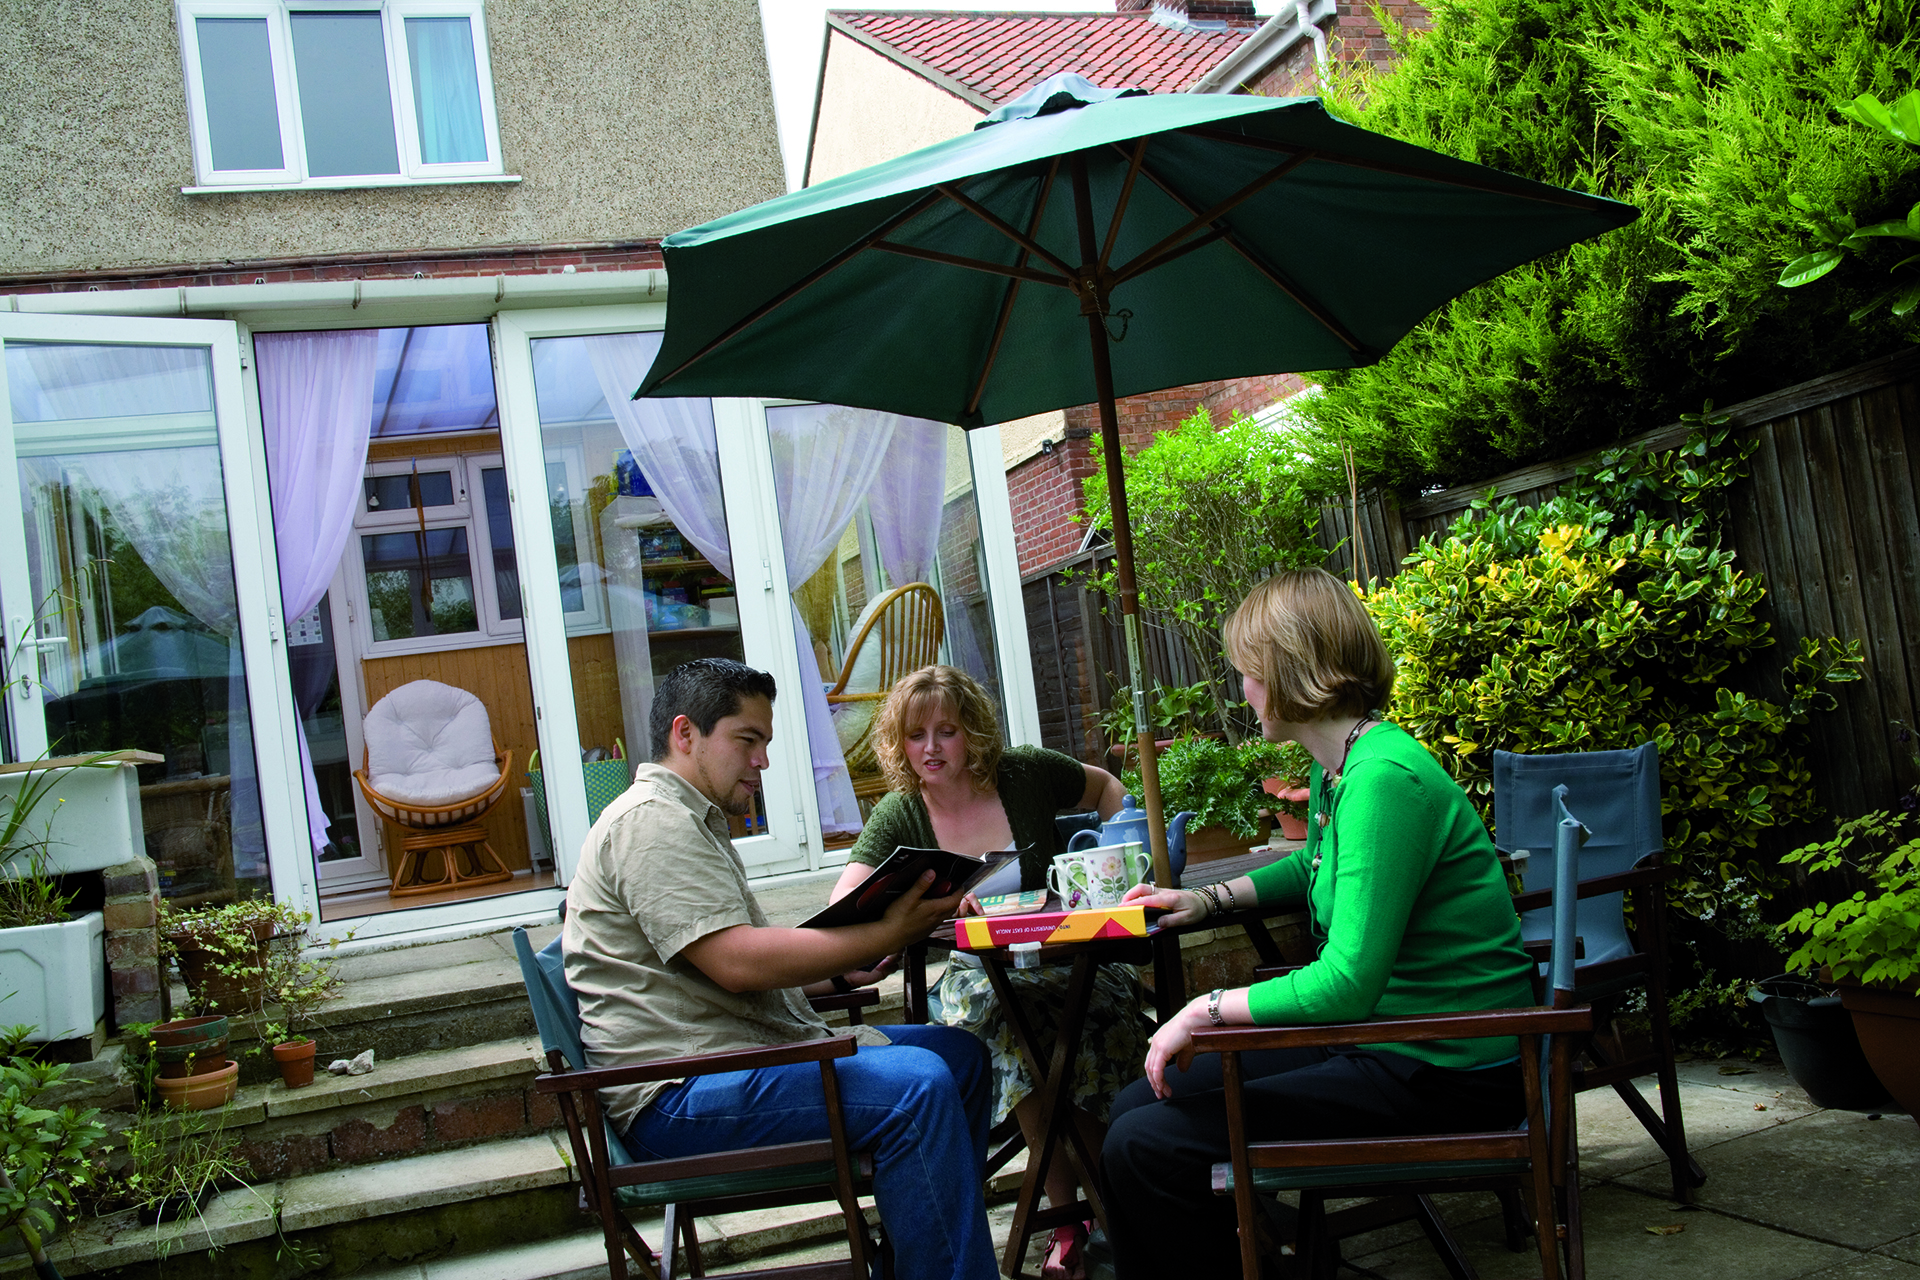 A student and their homestay accommodation hosts sitting at a table in a garden